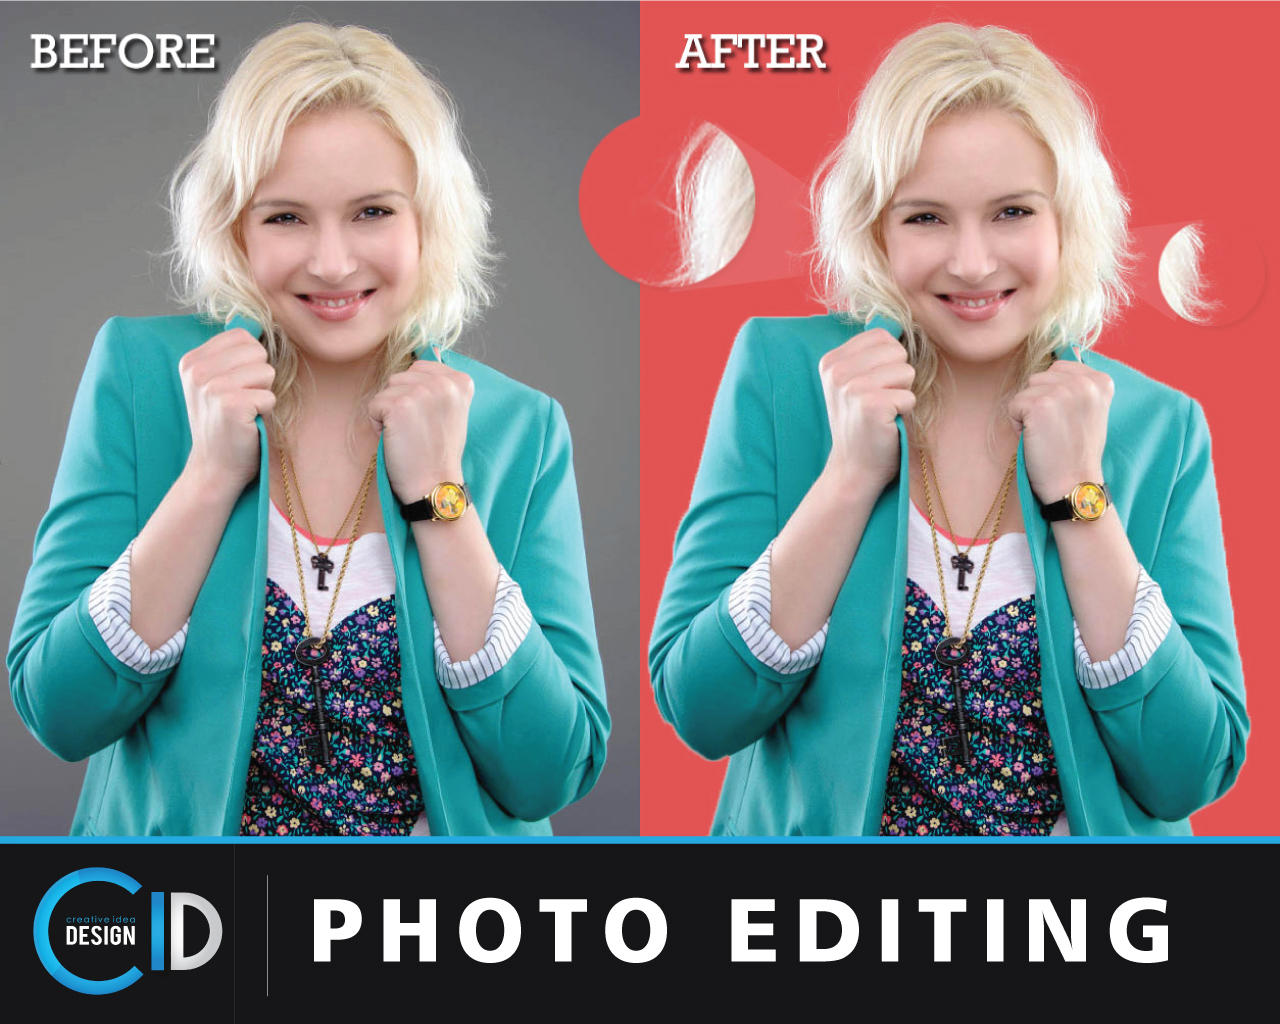 (3 Images): Clean Objects - Product Isolation - Remove Watermark - Fix Images by Thanhsugar - 95970